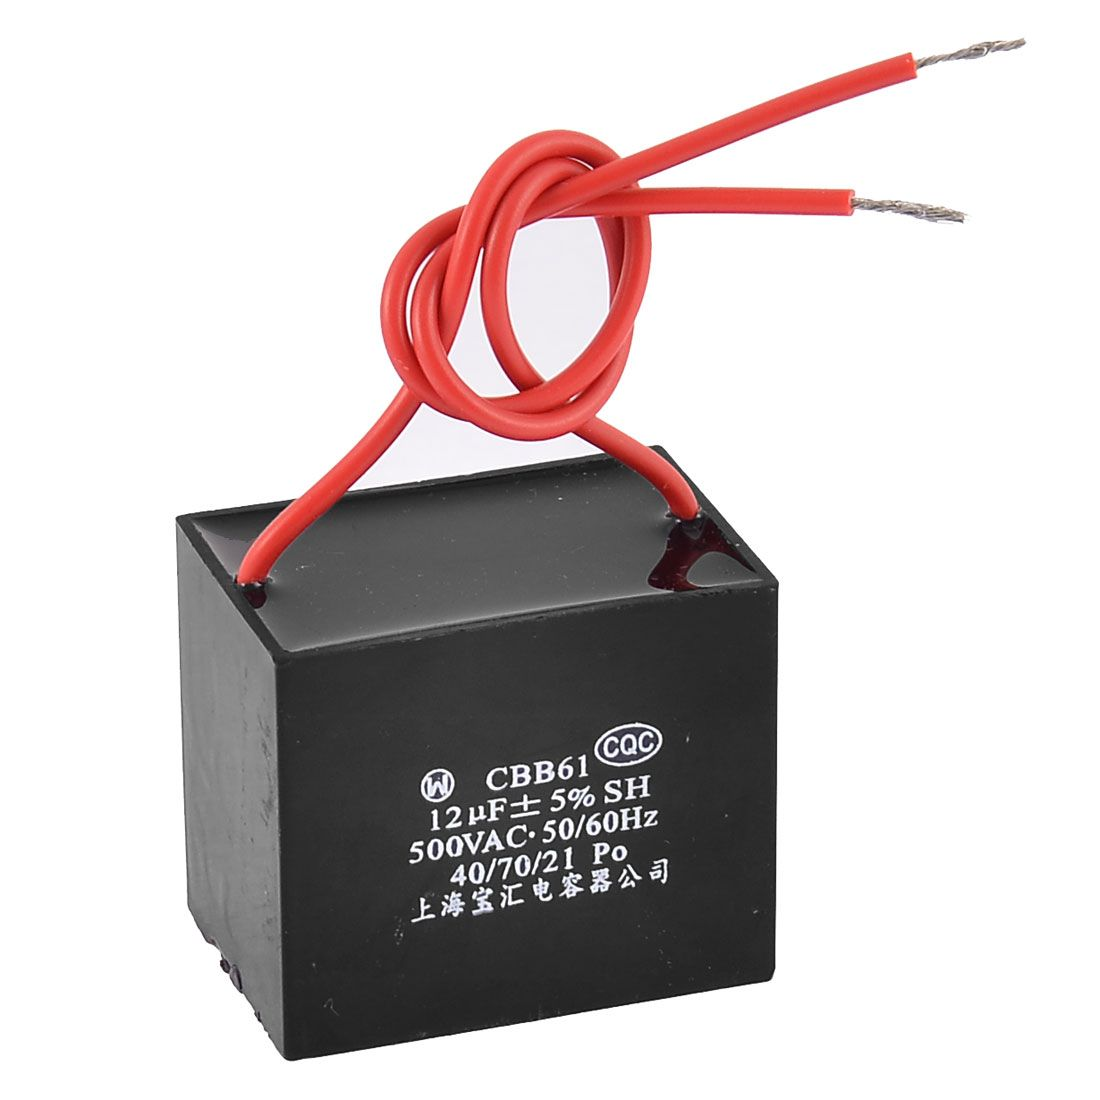 Uxcell Cbb61 12uf Ac 500v 50 60hz Metalized Motor Run Ceiling Fan Capacitor 12uf Affiliate Capacitor Ceiling Fan Electricity